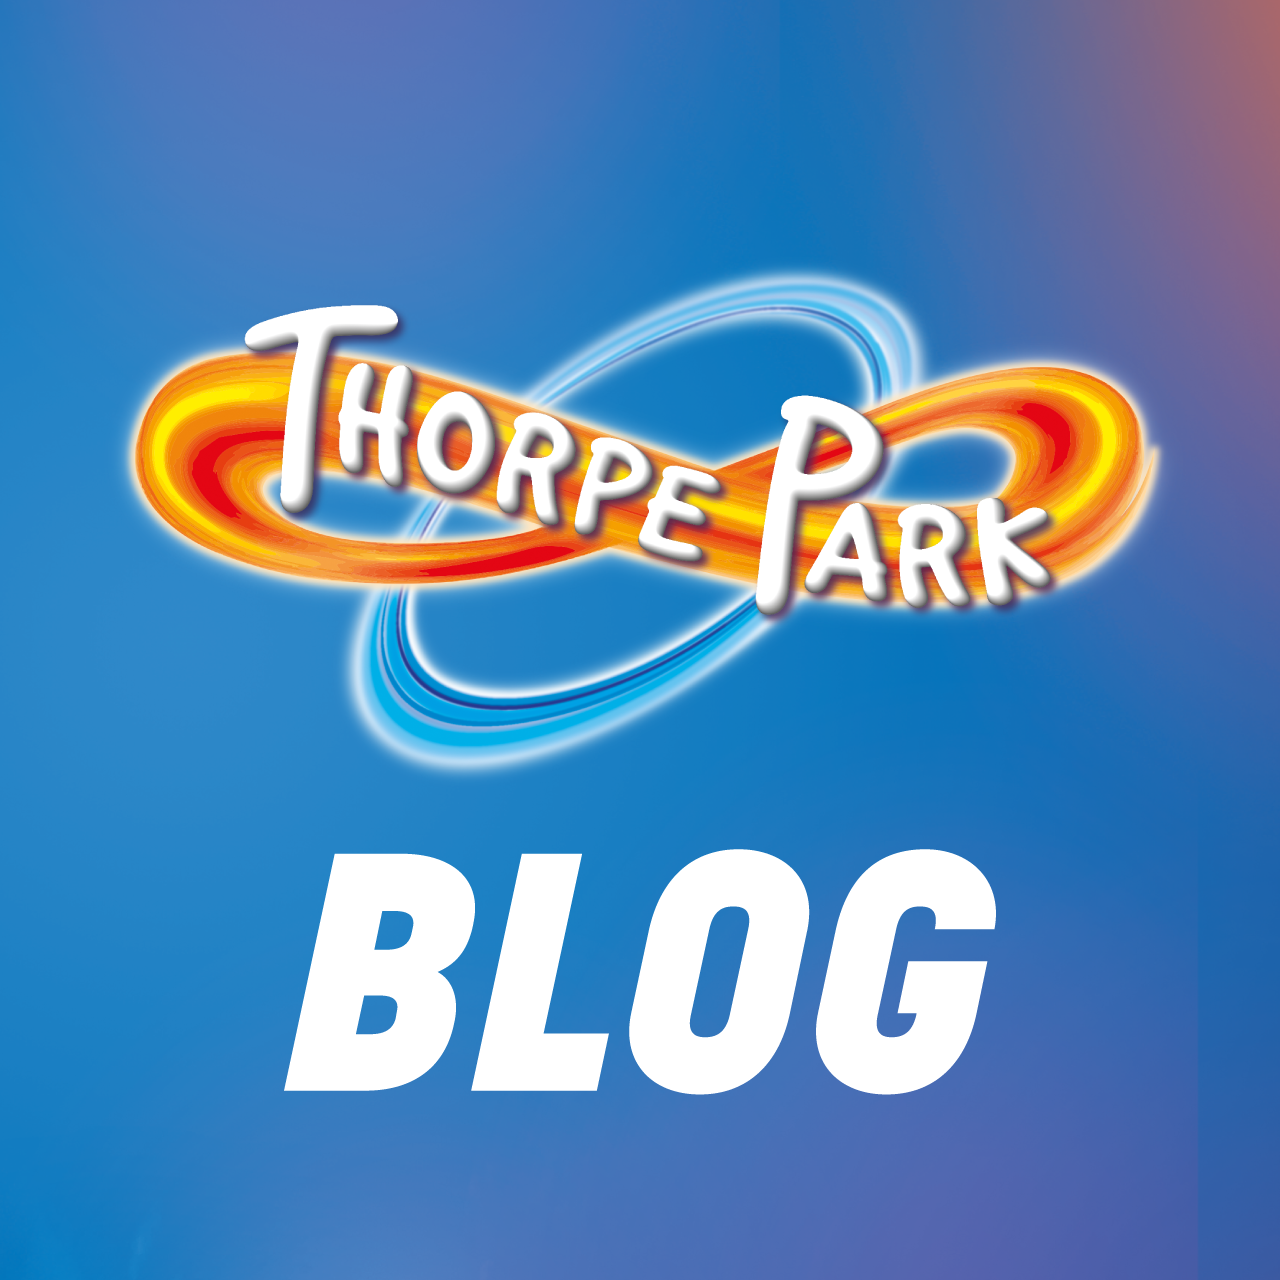 Thorpe Park Blog Logo